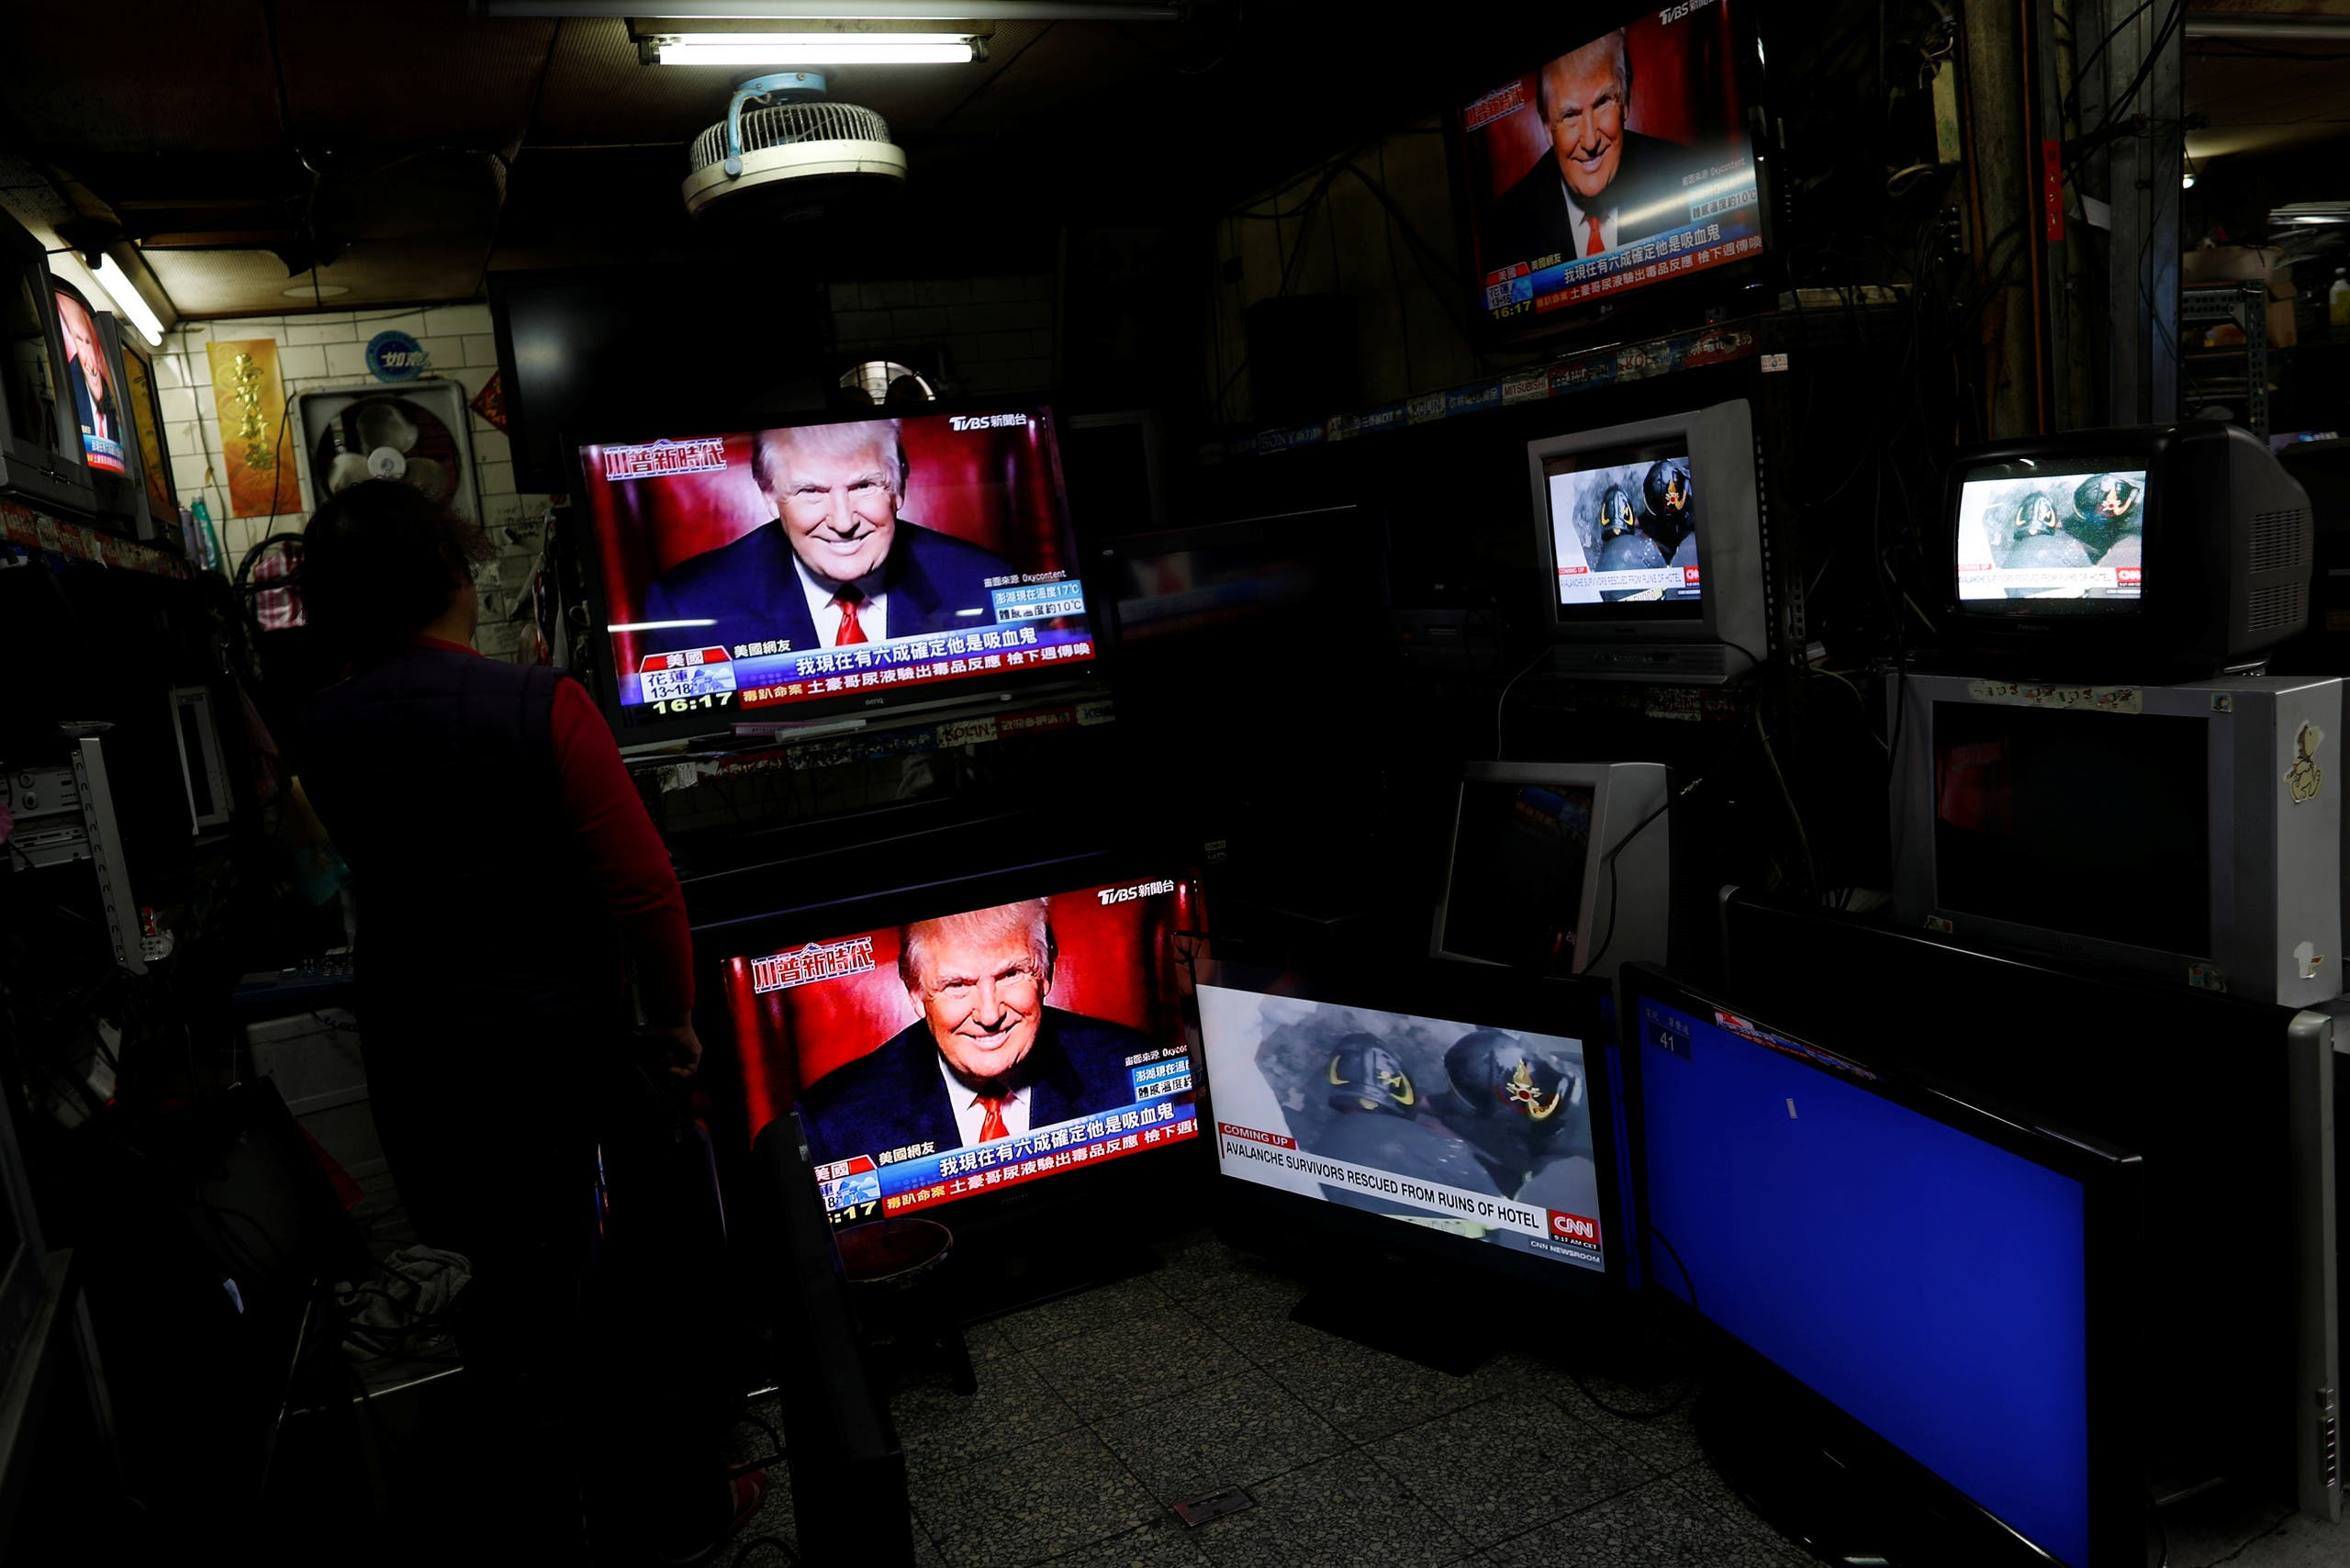 Images of U.S. President Donald Trump are seen on TV screens at a second hand shop in Taipei,Taiwan January 21, 2017. REUTERS/Tyrone Siu